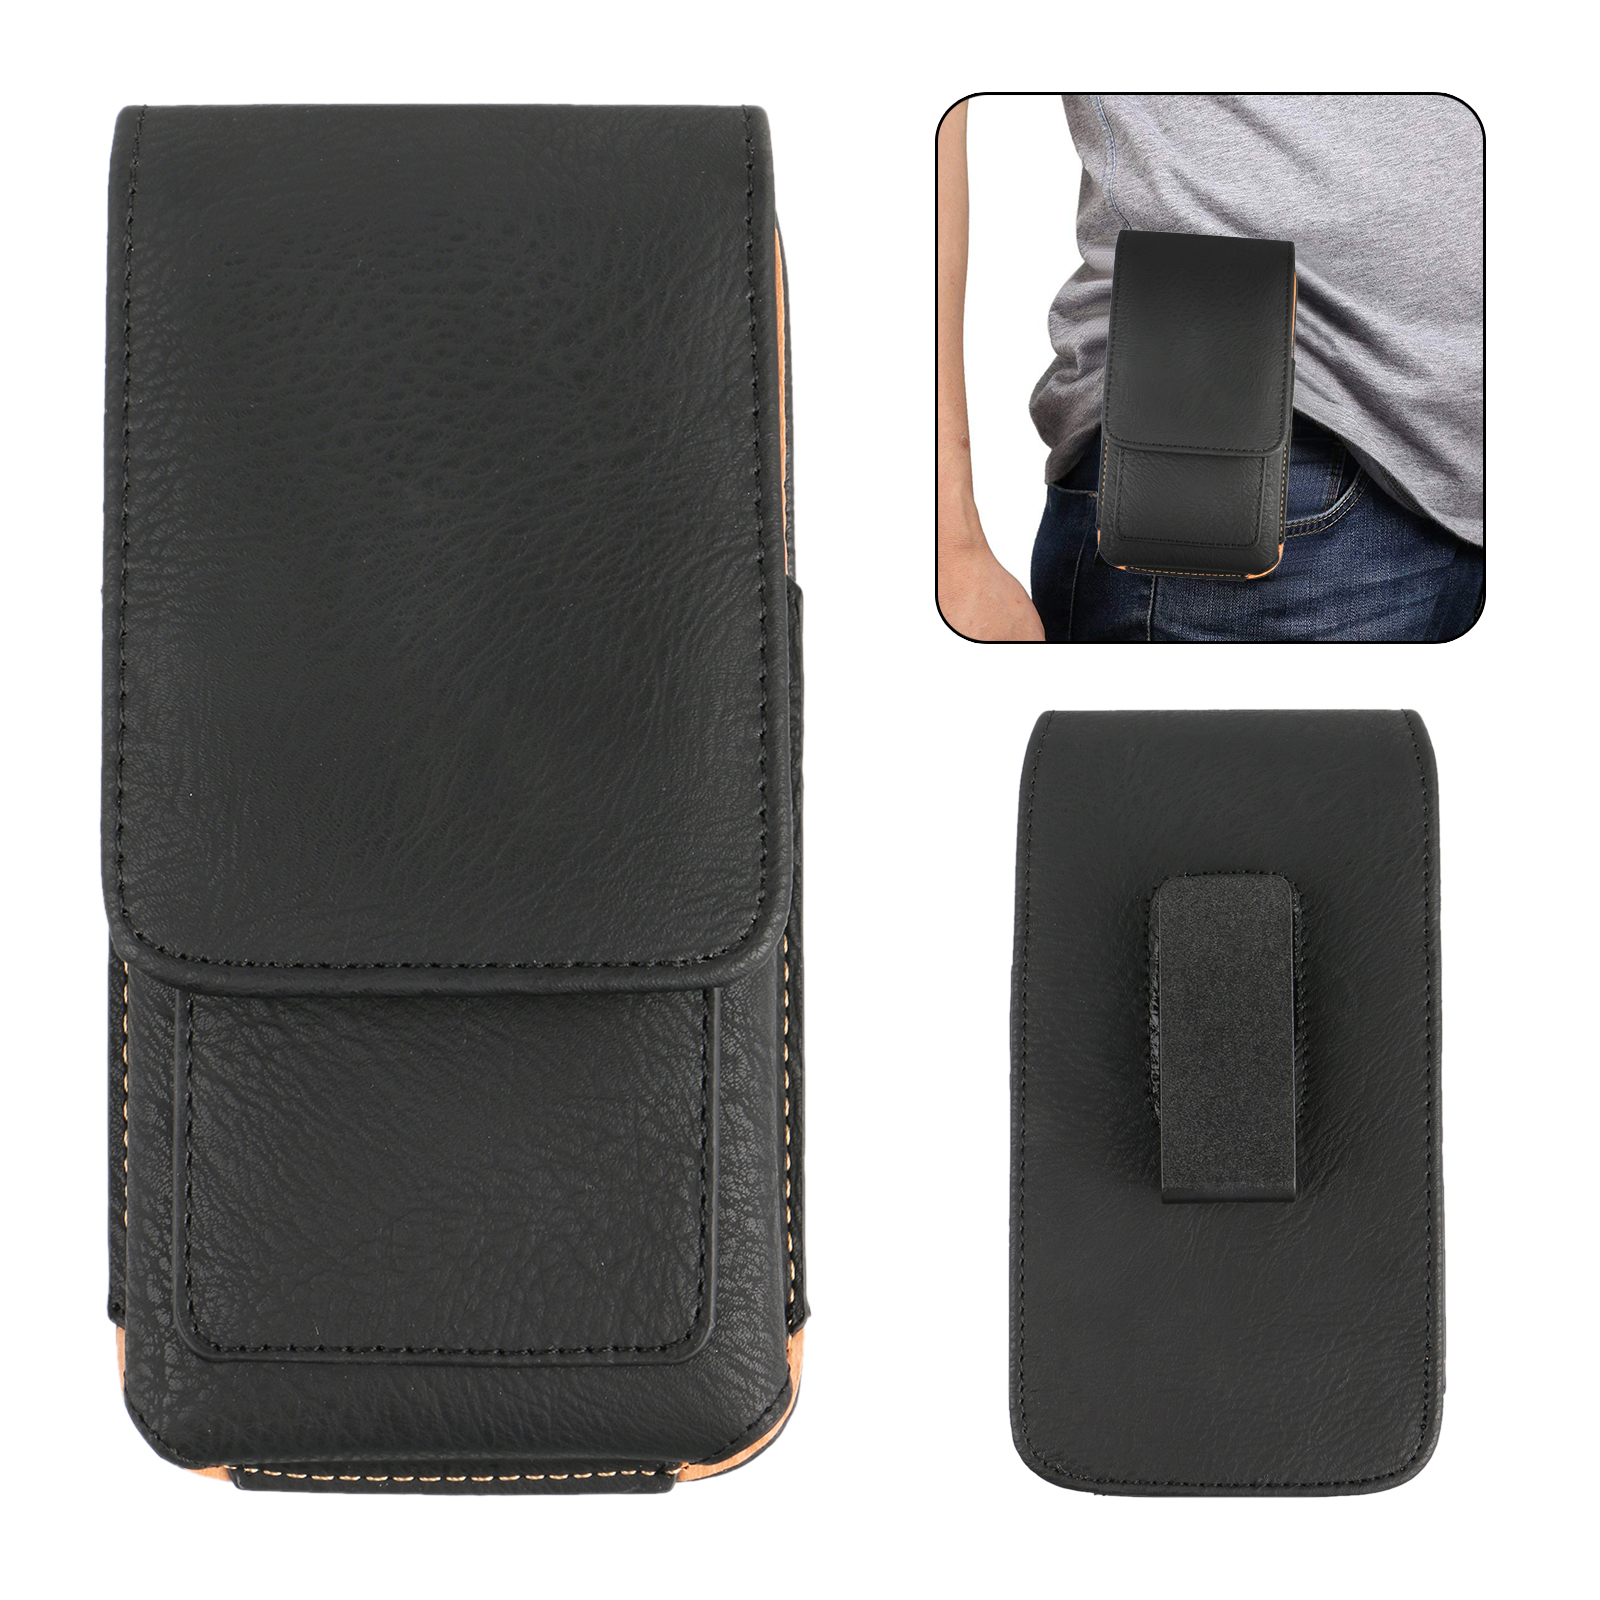 "Cell Phones Vertical Leather Case Pouch Cover Belt Clip Holster with Card Holder for 5.3""/5.5"" Universal Phones"